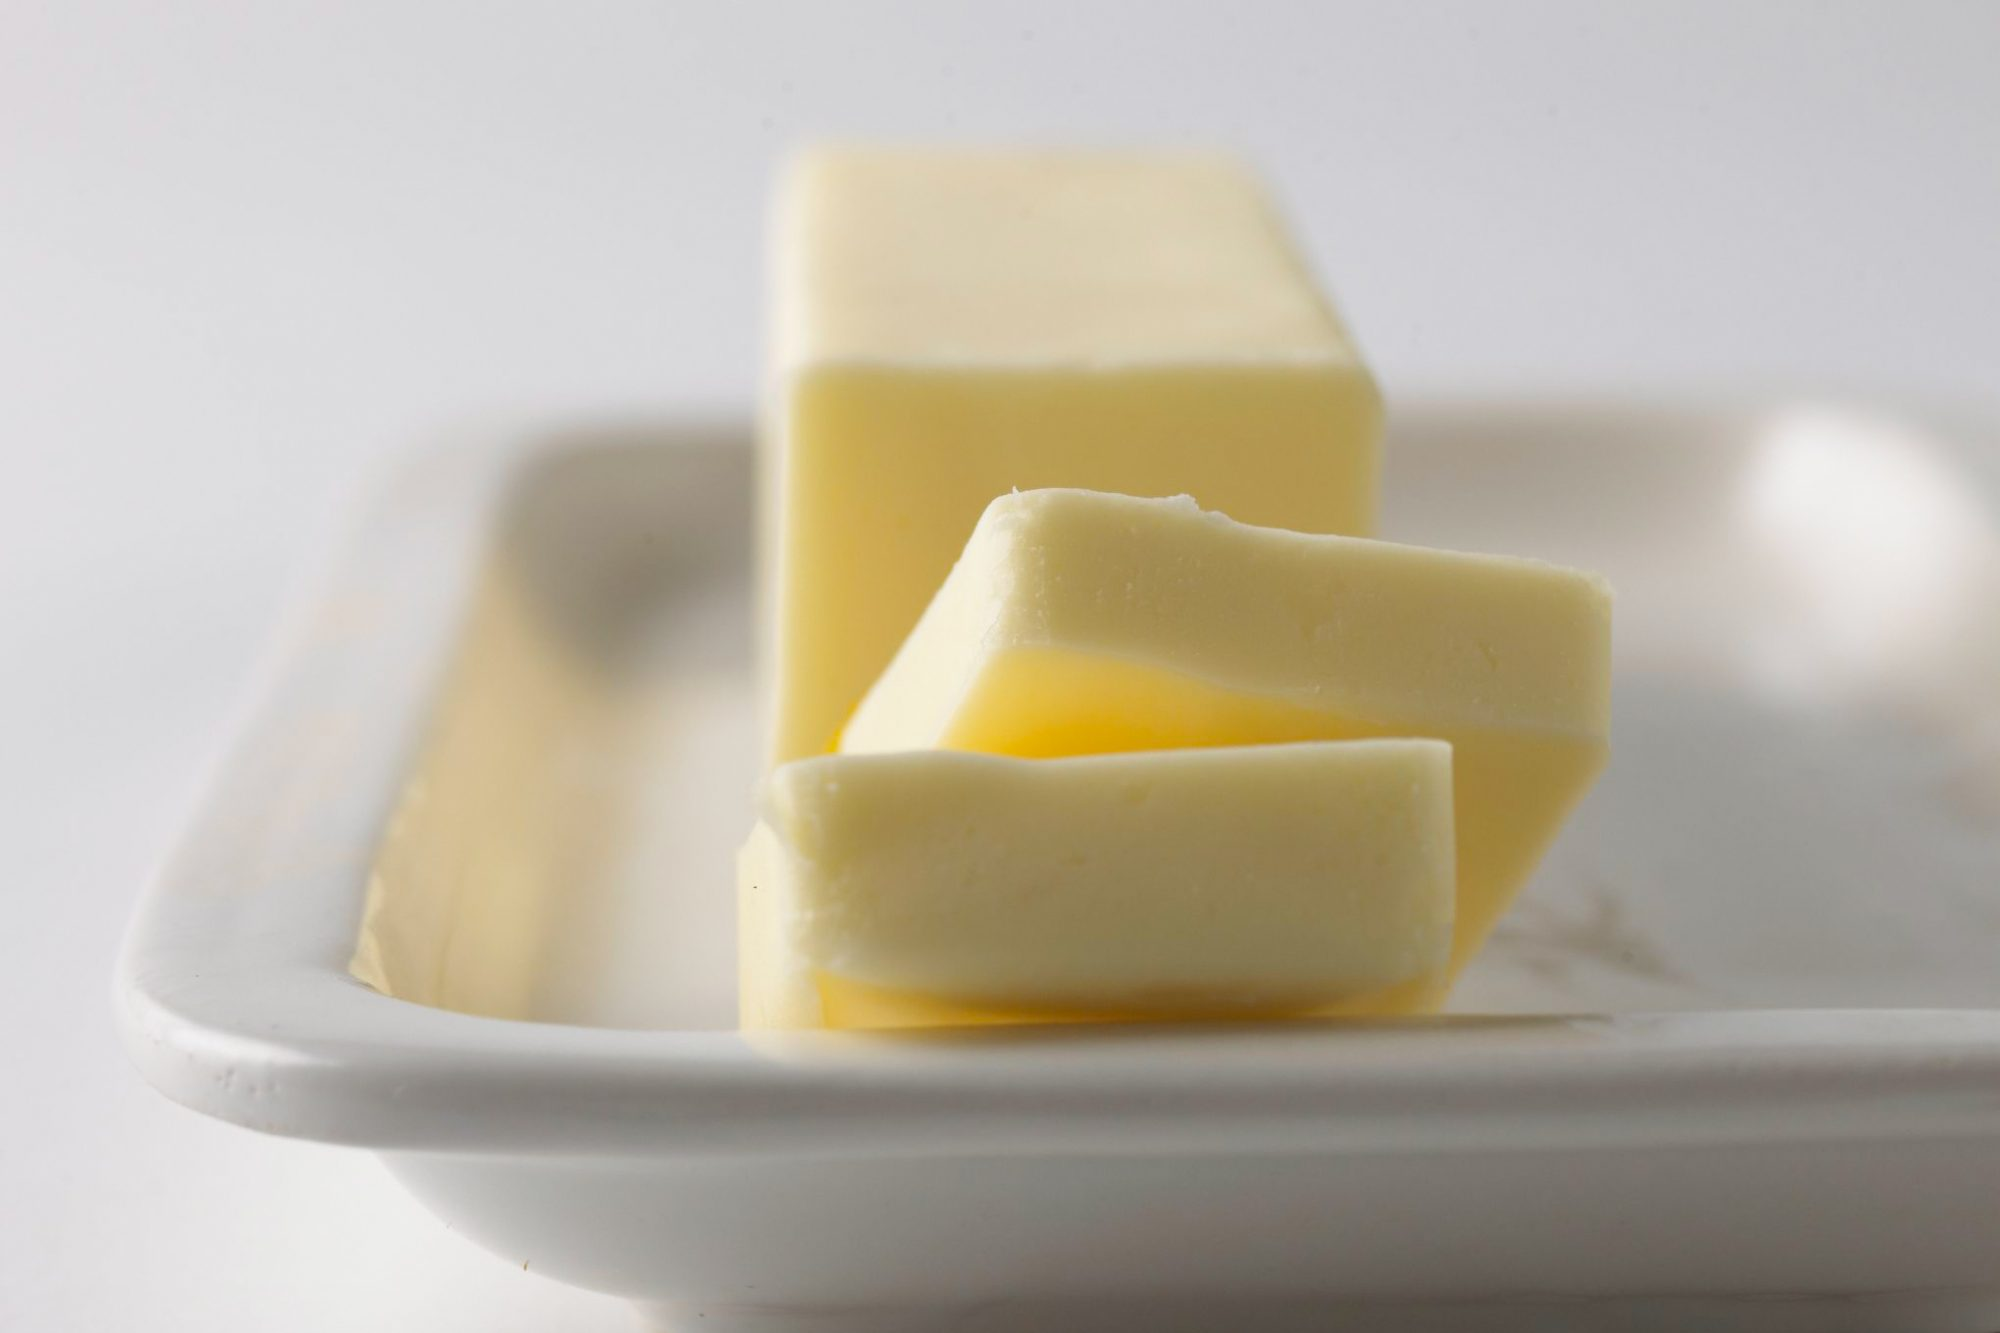 Stick of butter with a few slices cut on a white platter